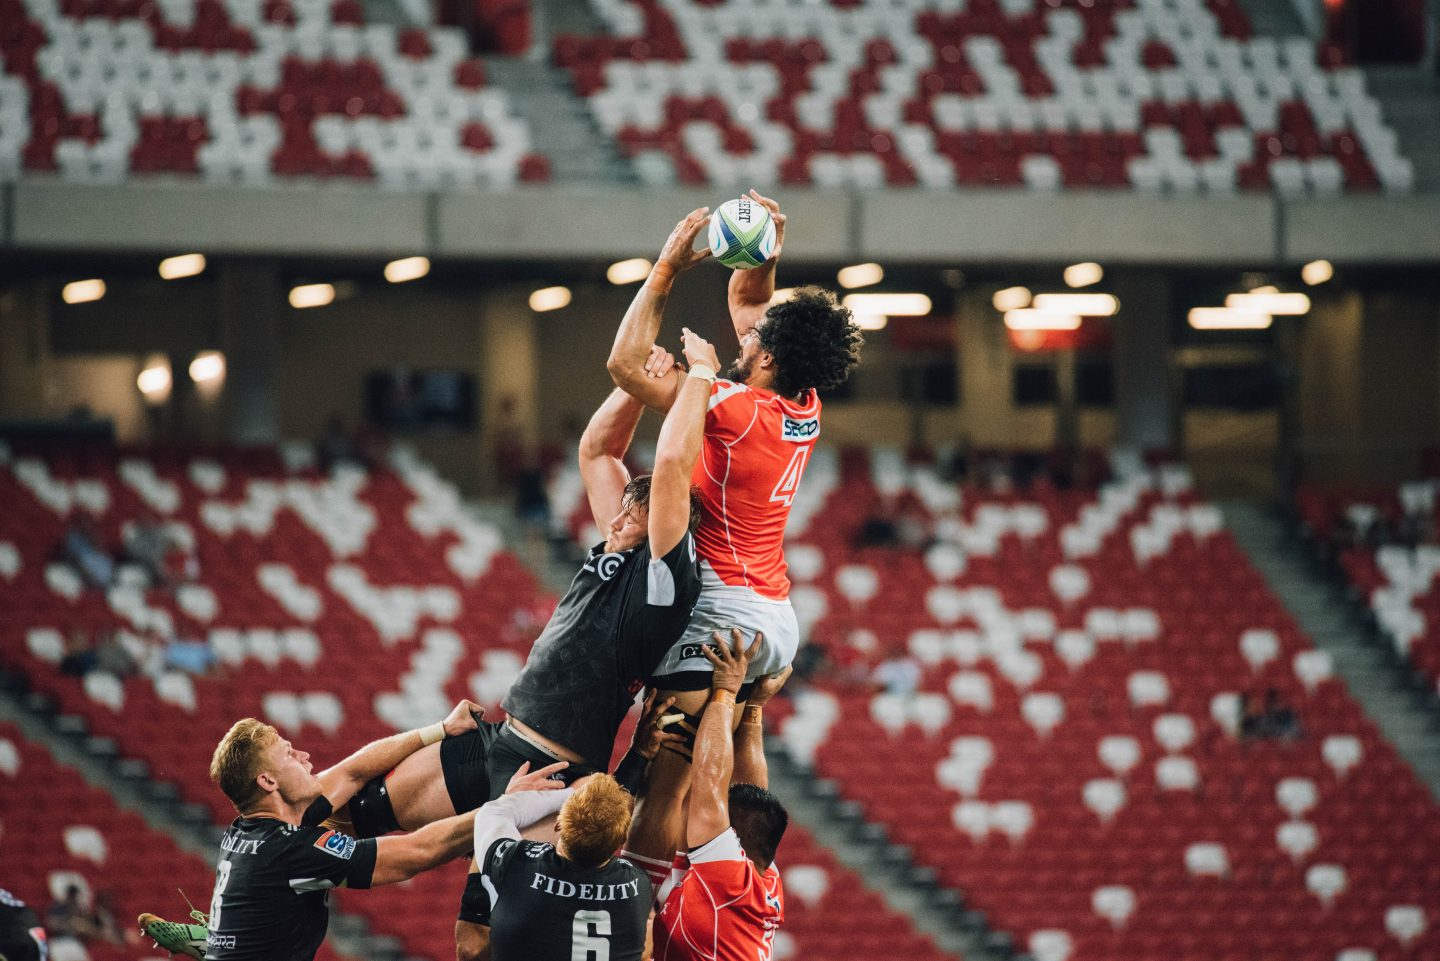 rugby players lifting team mate to catch line out